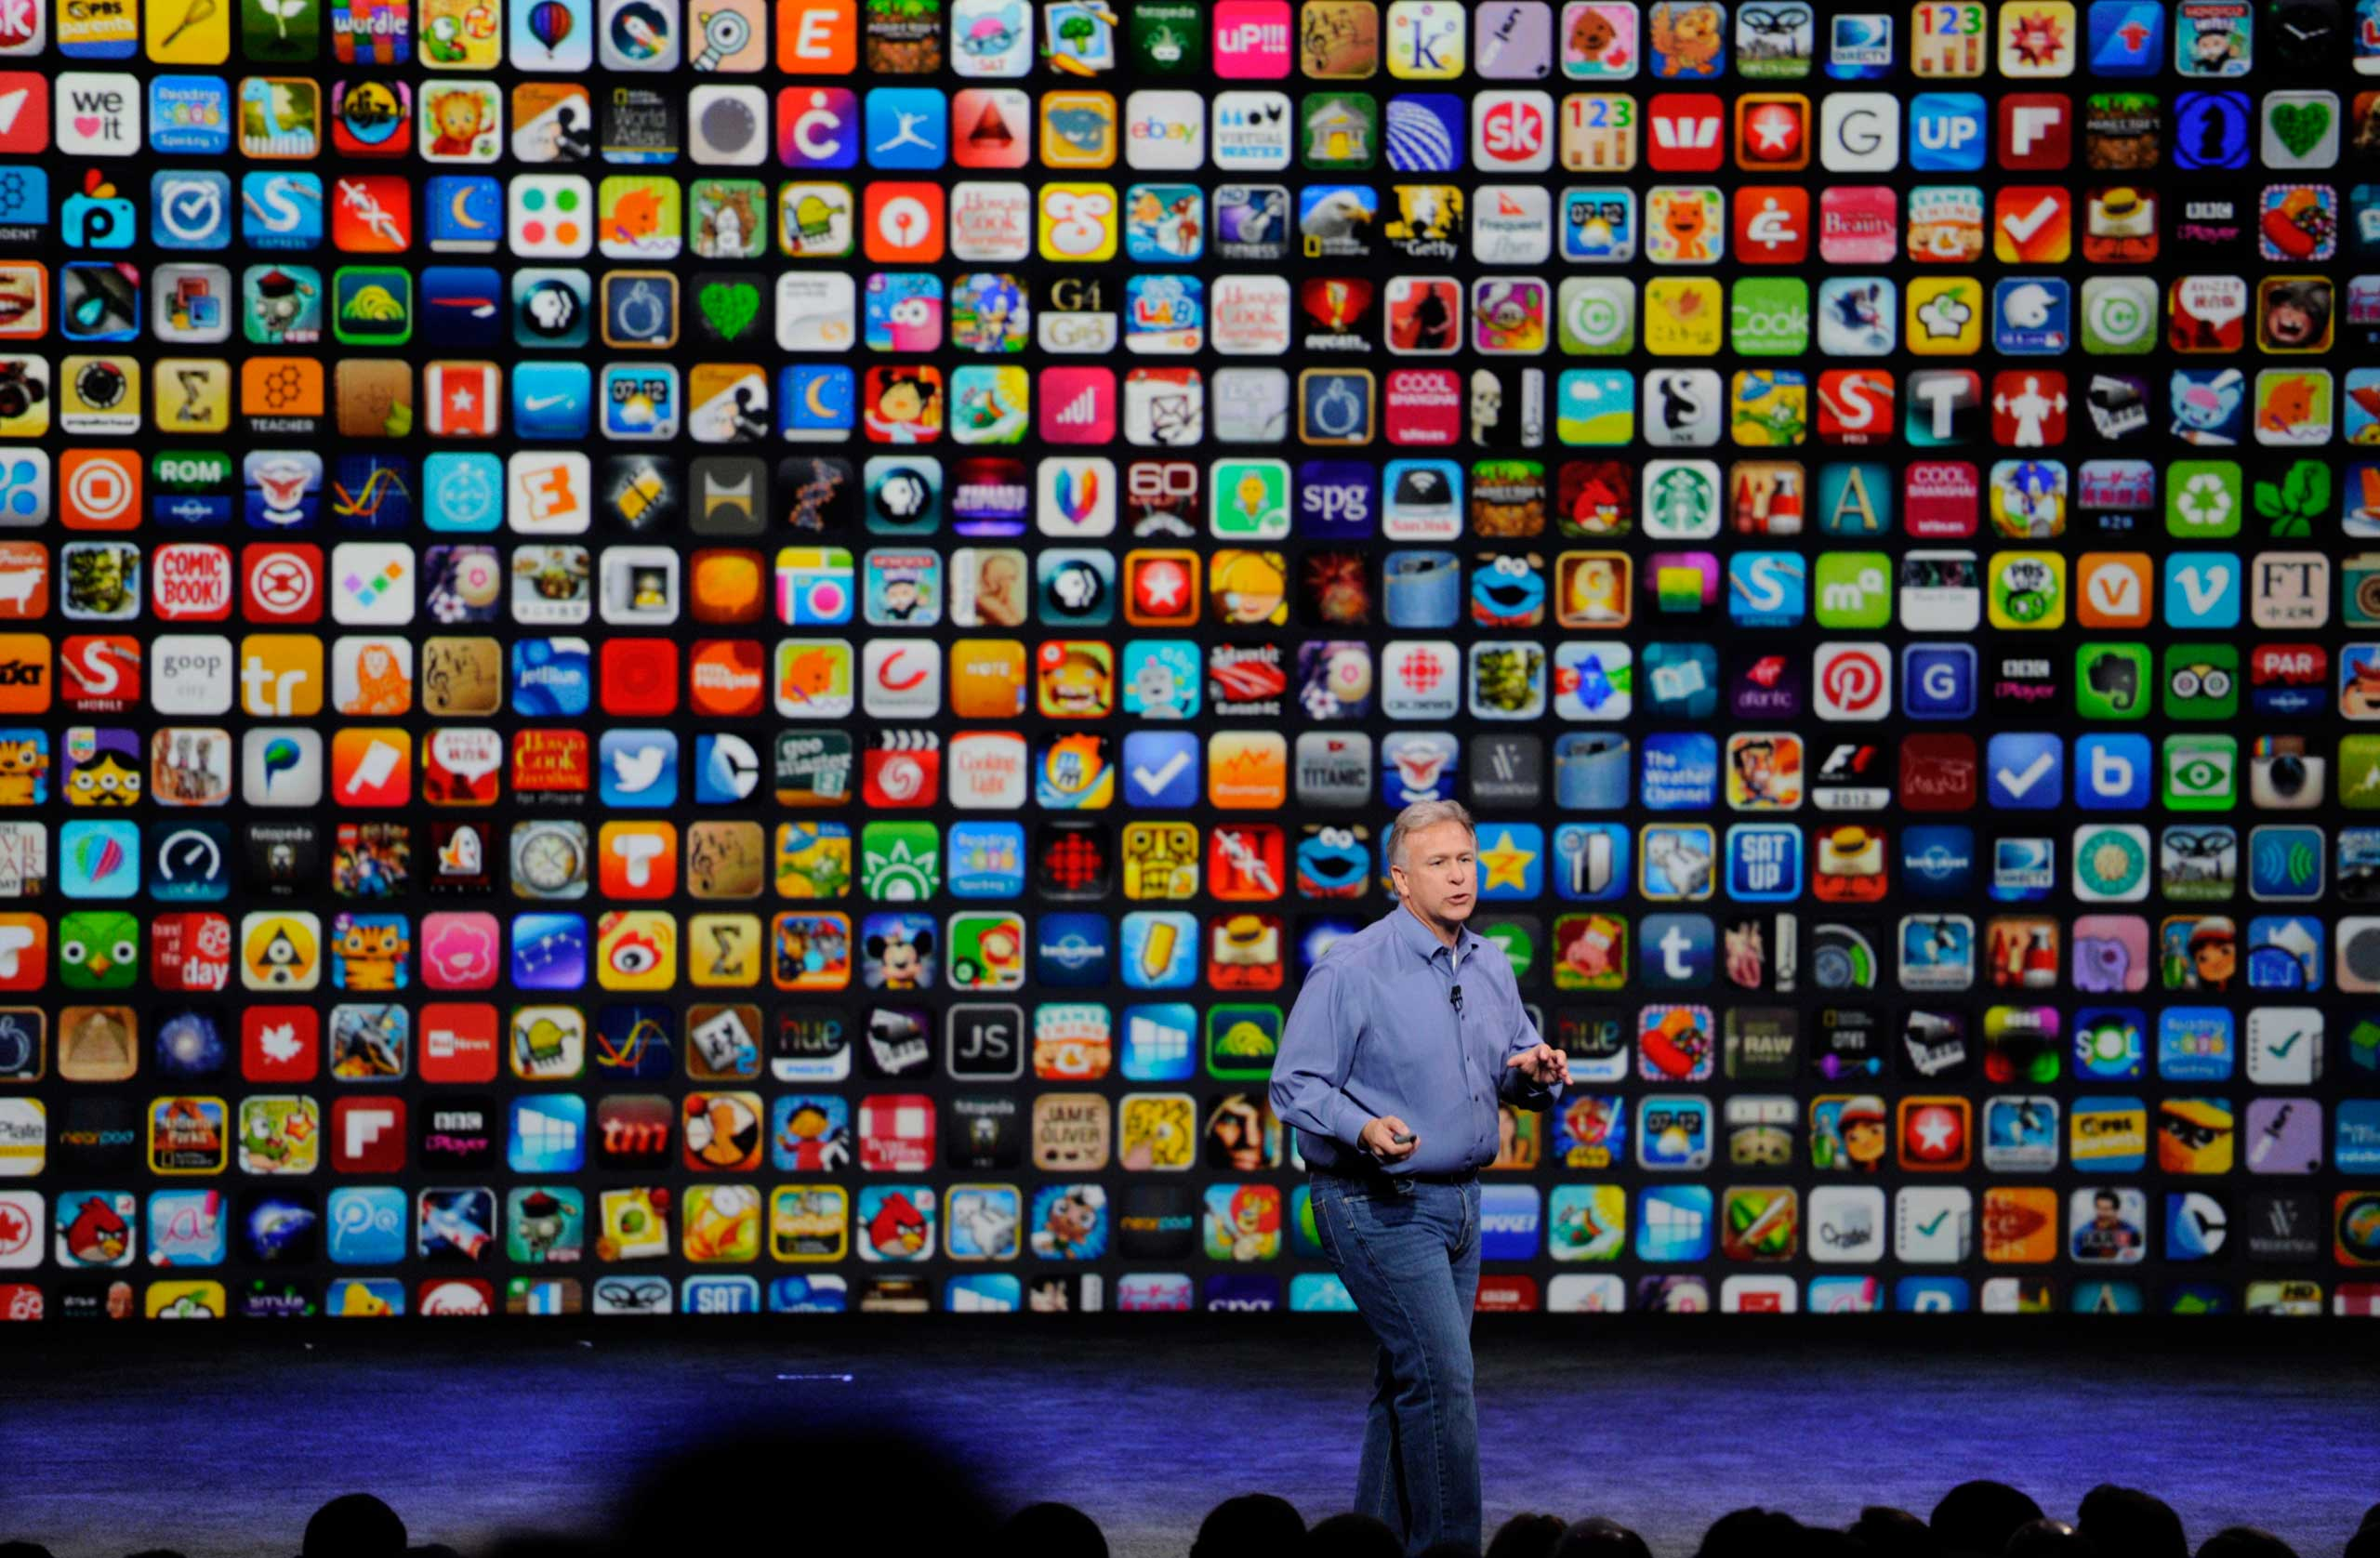 Philip Schiller, senior vice president of worldwide marketing at Apple Inc., speaks about the iPhone 6 and iPhone 6 Plus during a product announcement at Flint Center in Cupertino, California on Sept. 9, 2014.